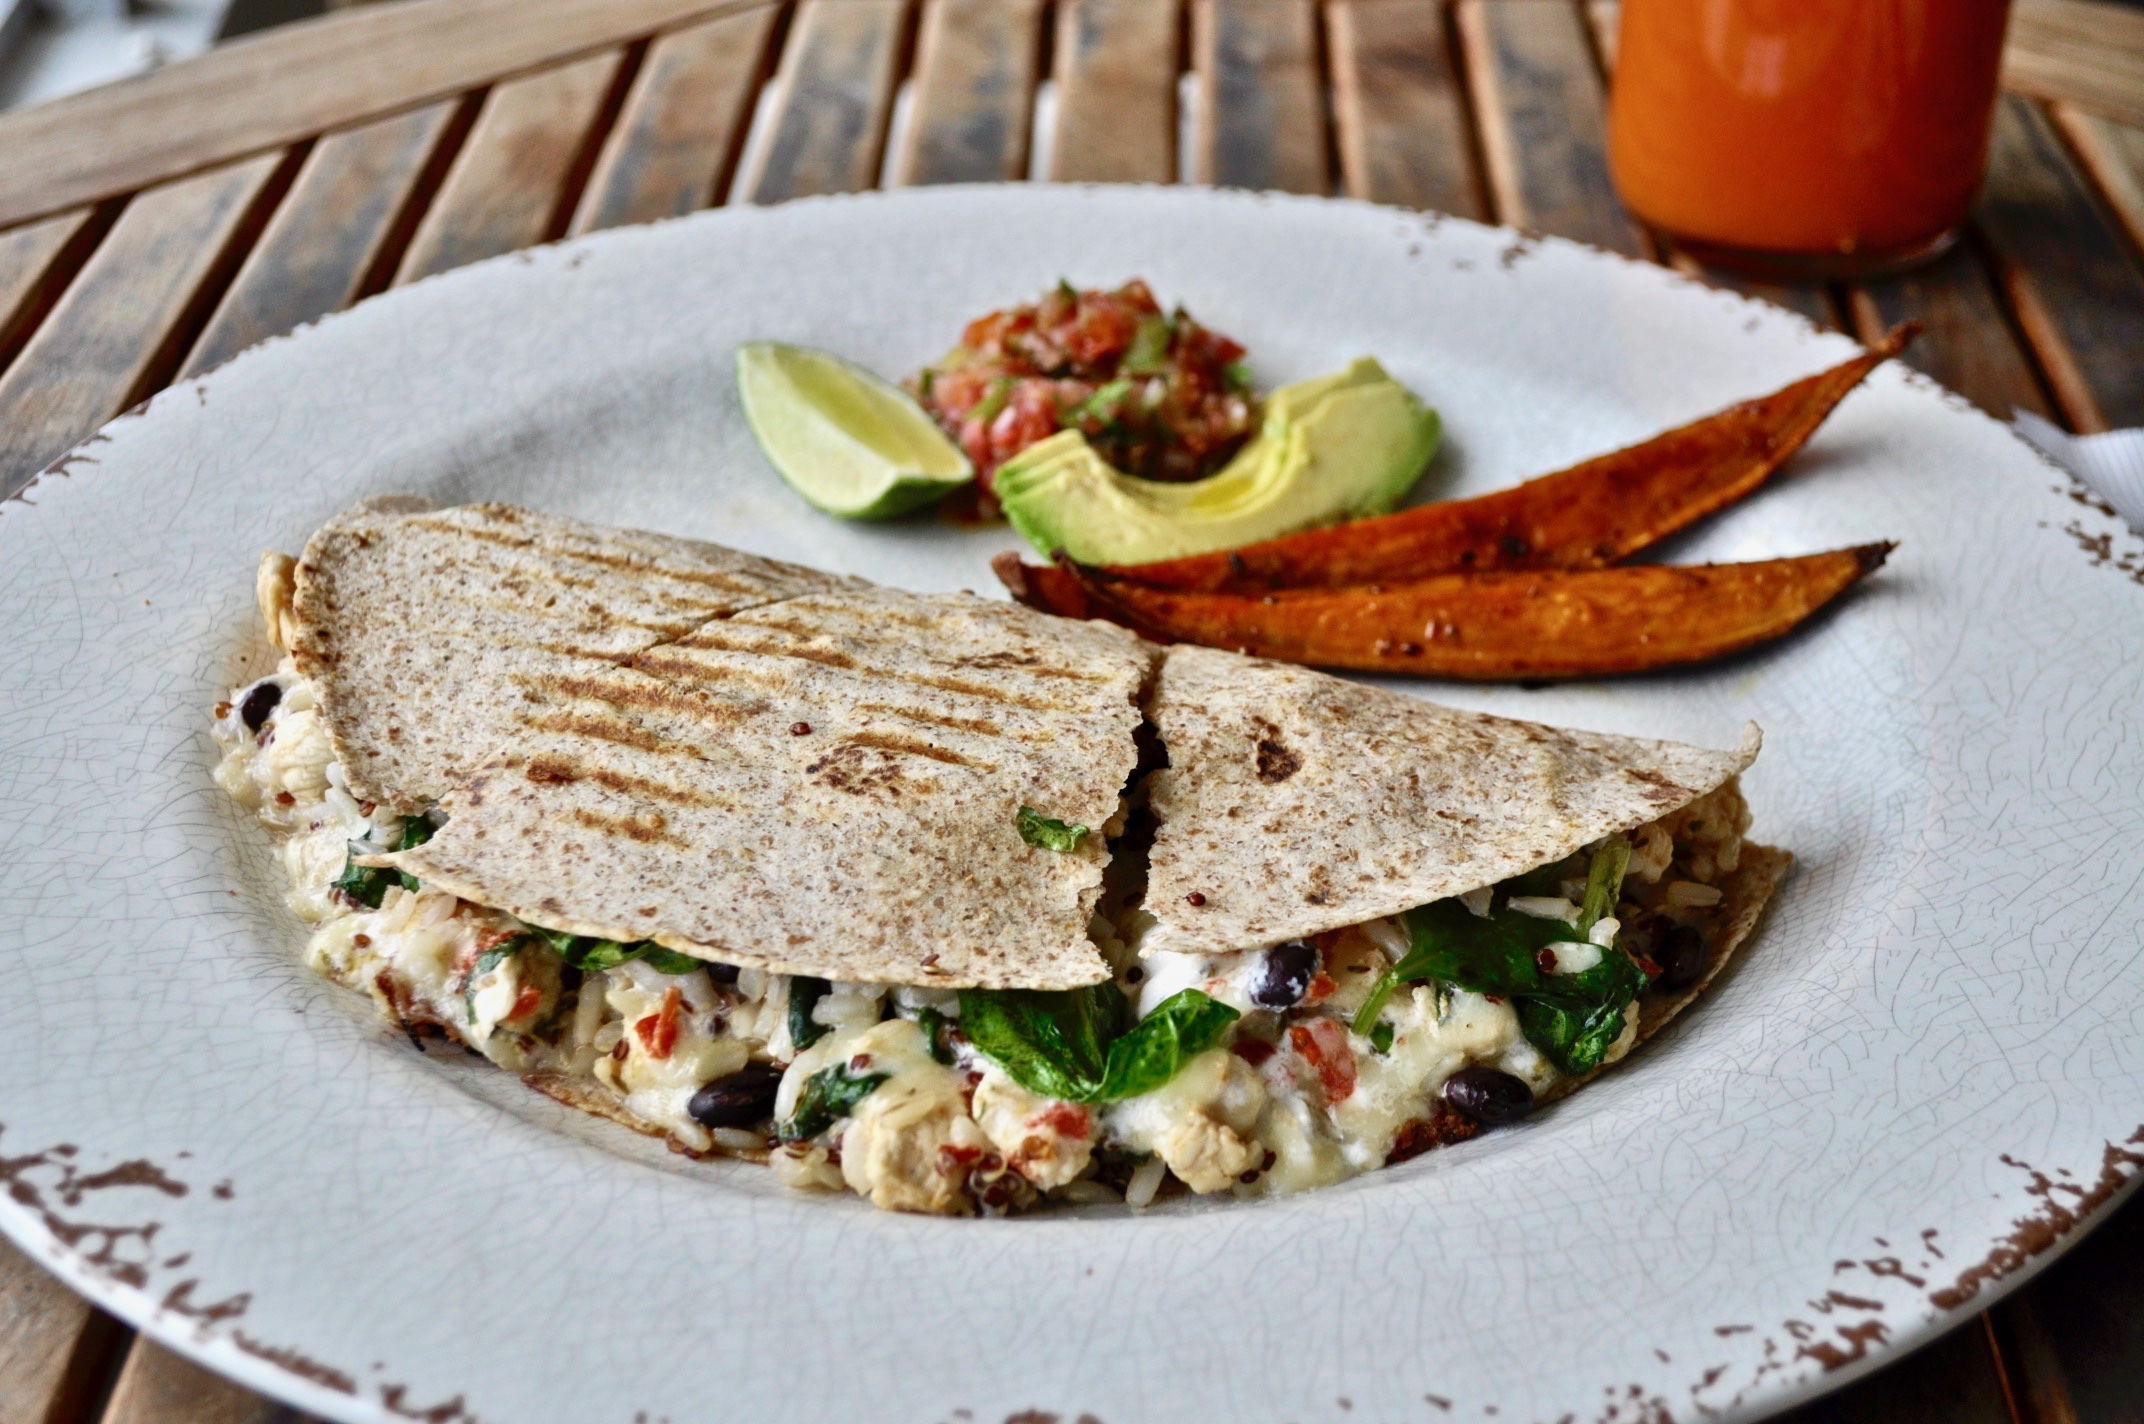 Fri - The ultimate chicken quesadilla Image